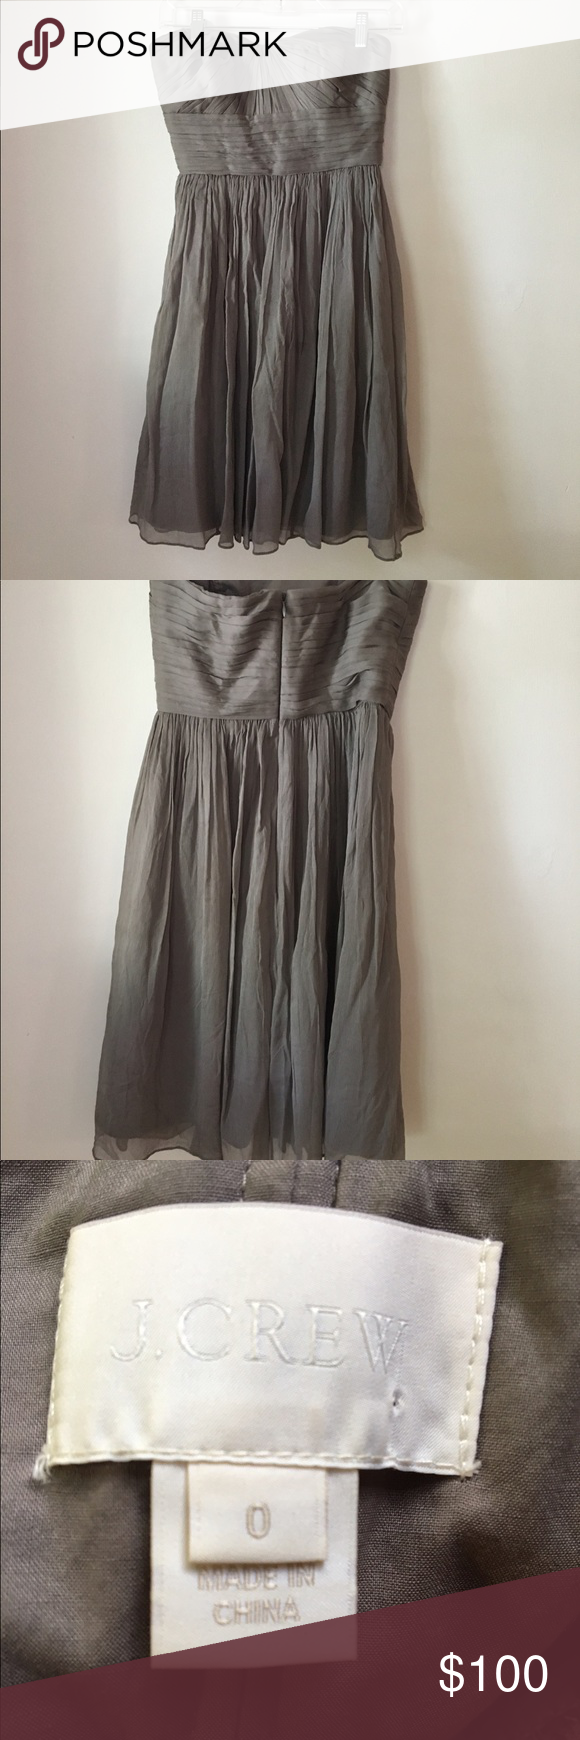 Jew grey strapless dress grey strapless dress and dresses jew grey strapless dress grey jew strapless dress for sale perfect ombrellifo Choice Image